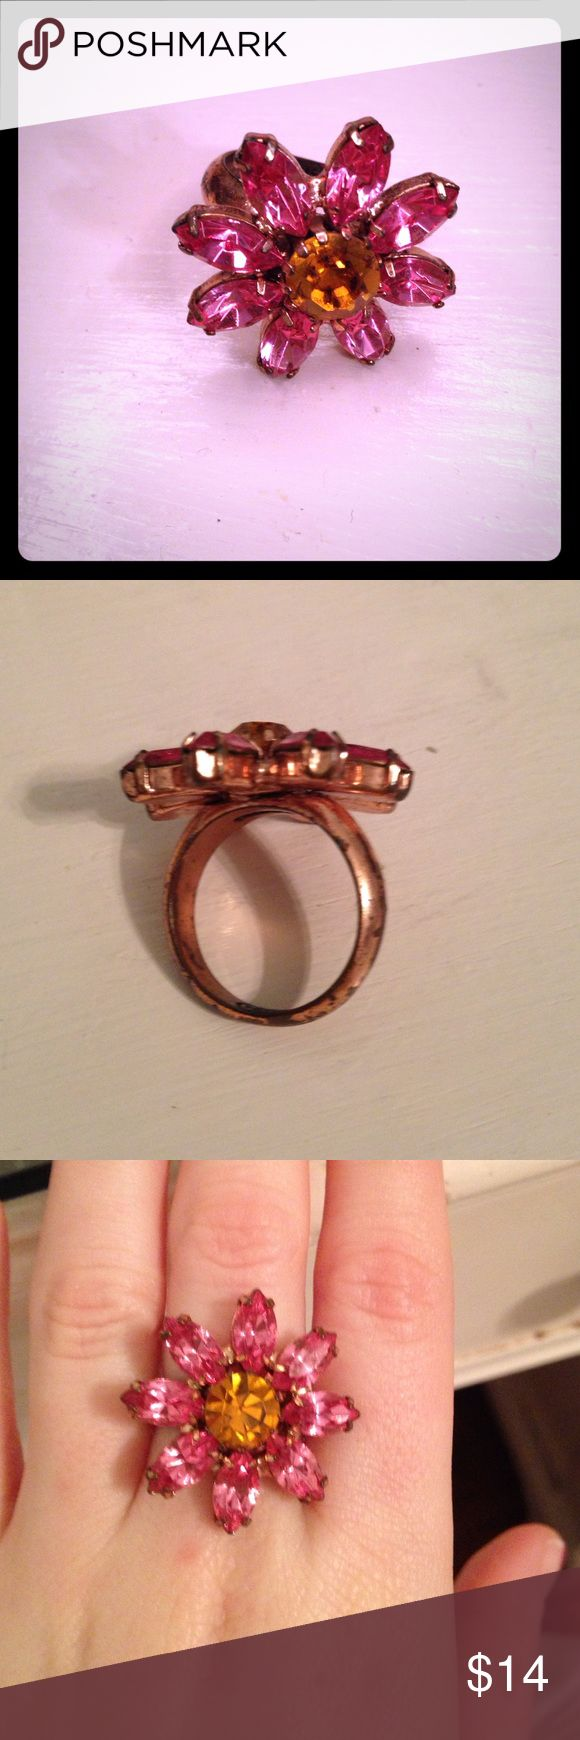 Coach flower ring Coach ring, pink flower orange center. Band is very worn, size 6, I believe. I have small fingers and it fits my middle finger. Coach Jewelry Rings